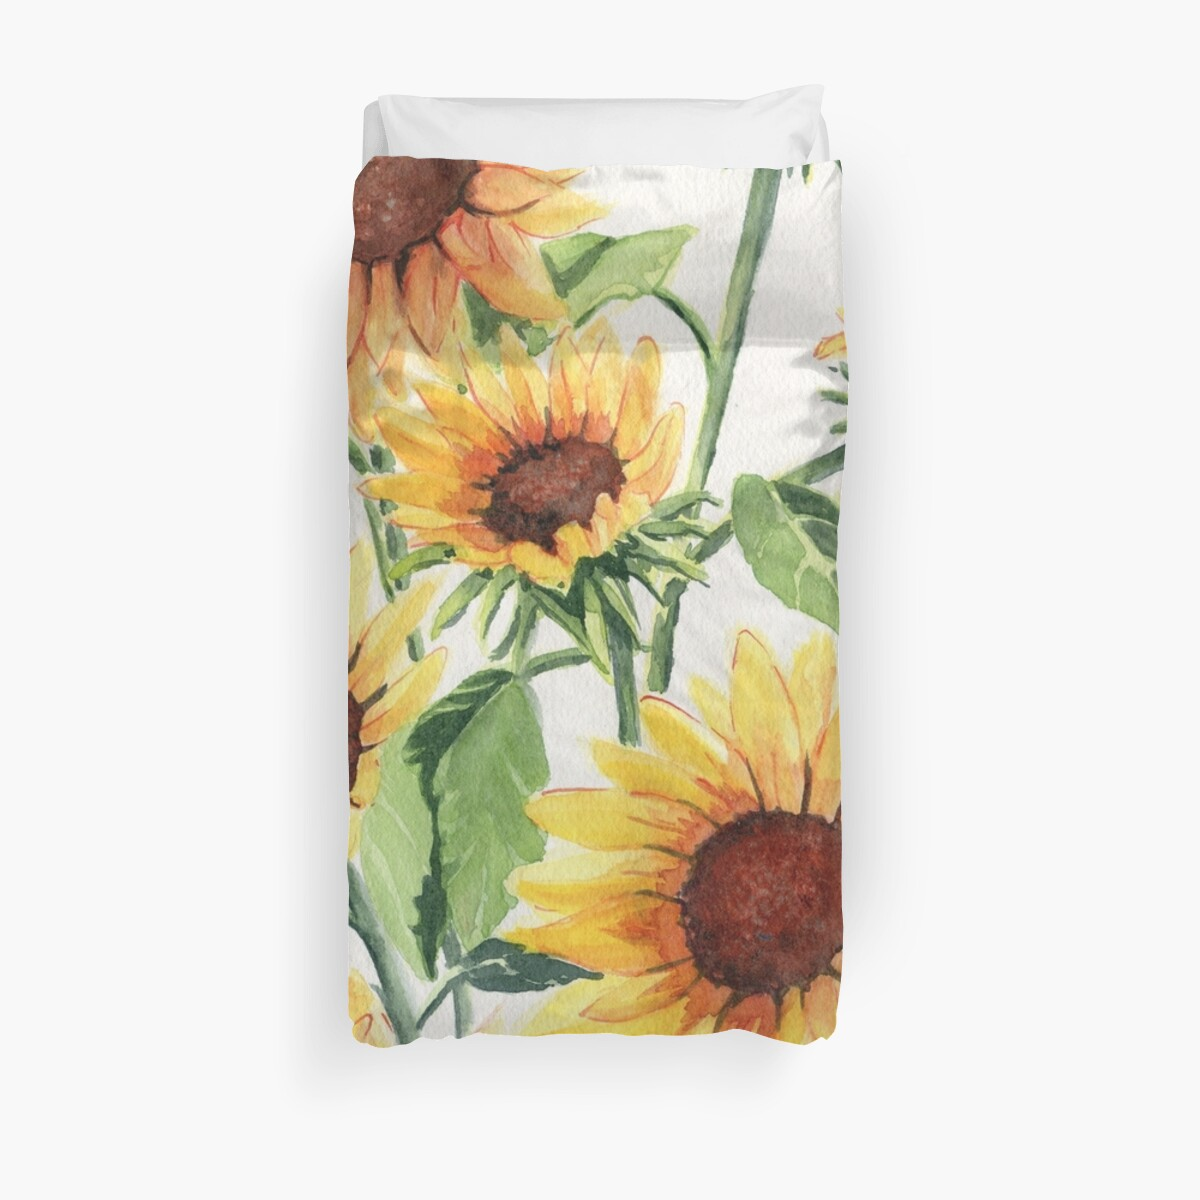 Sunflowers by Melly Terpening